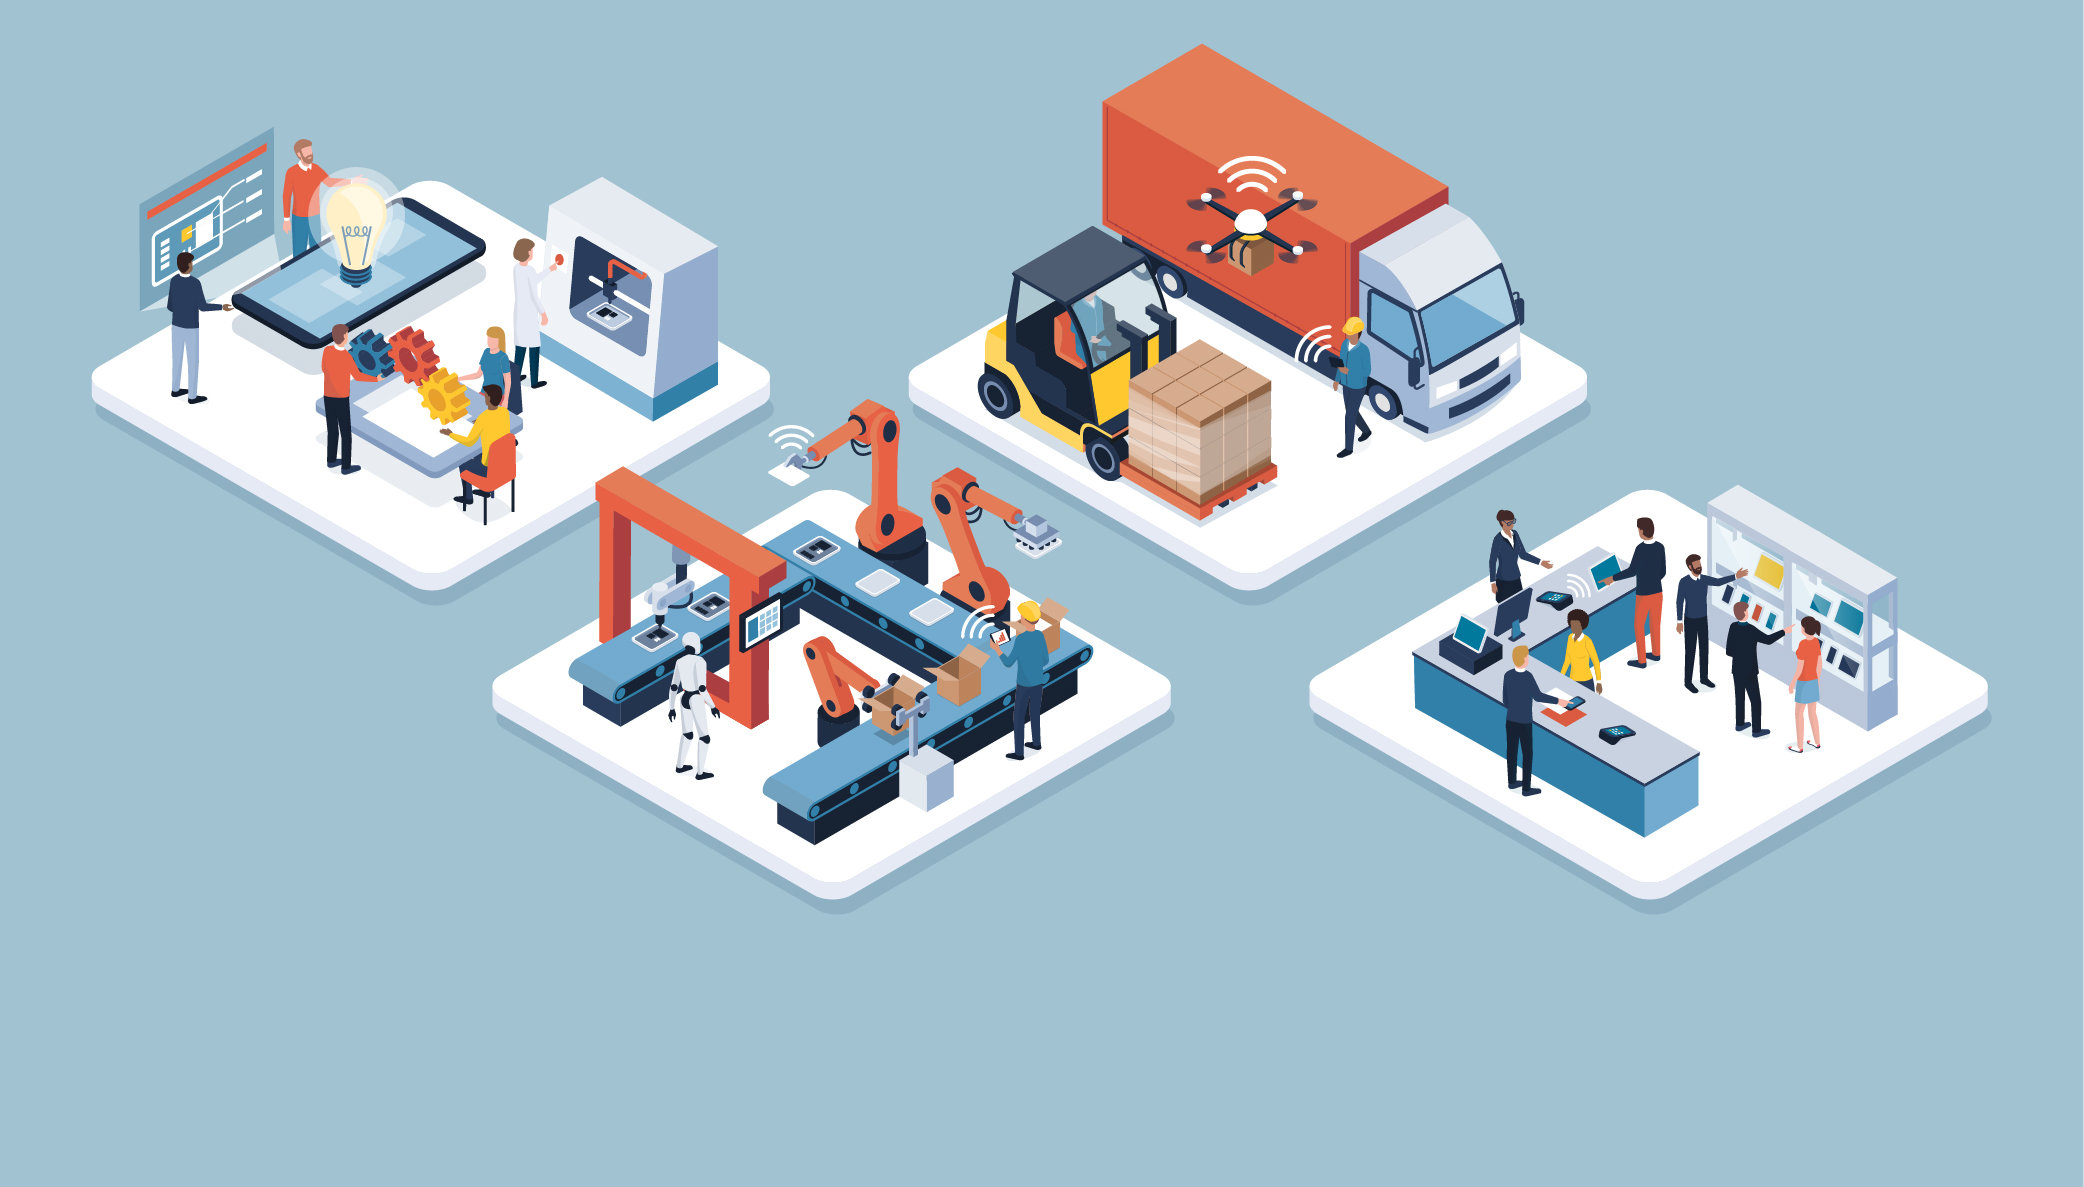 Technology Management Image: Complete Guide: 10 Smart Factory Trends To Watch In 2019